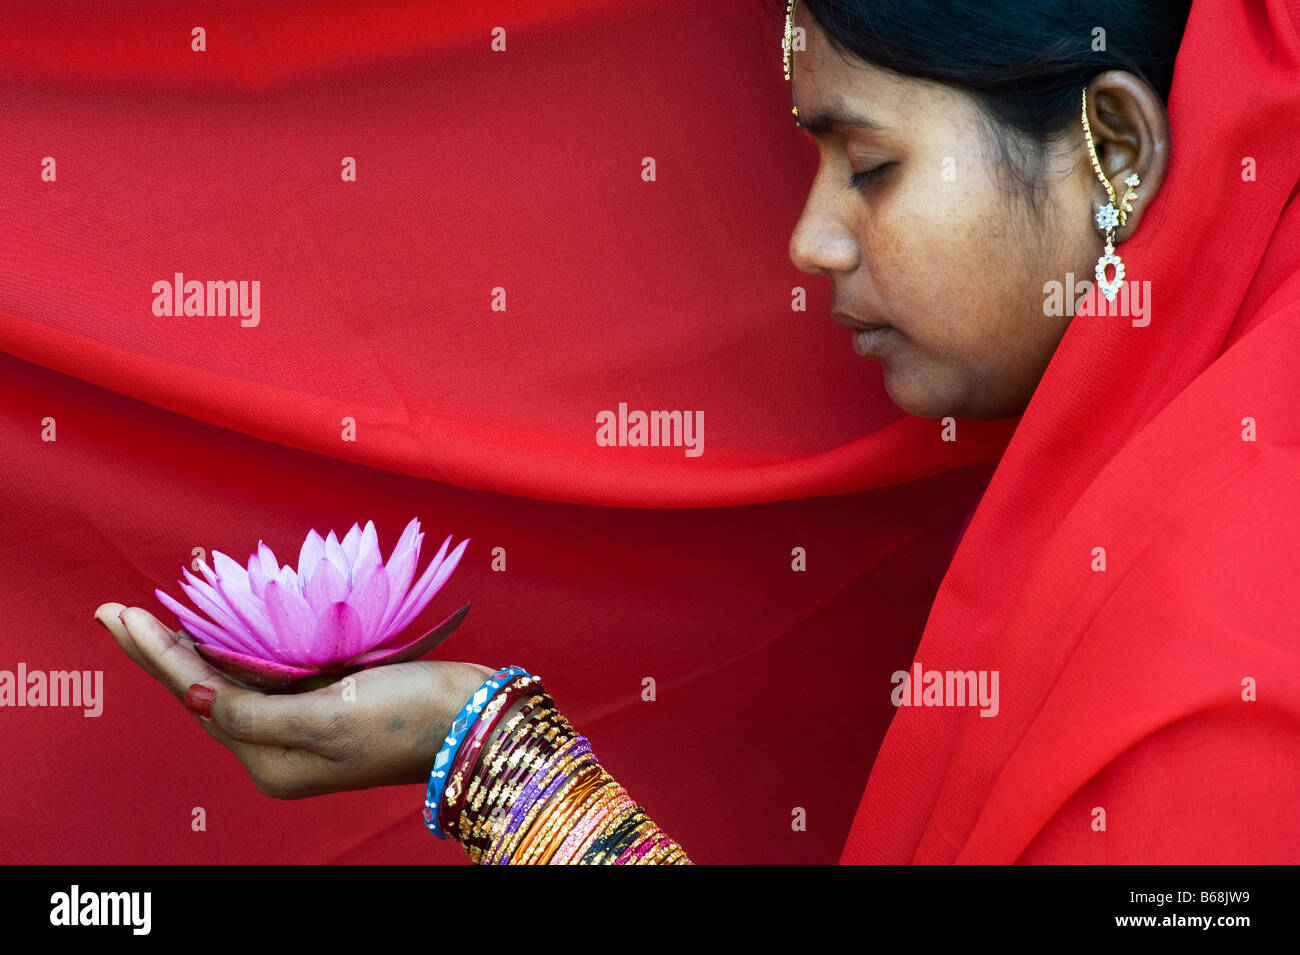 Indian woman offering a Nymphaea Tropical waterlily flower in a red sari Stock Foto